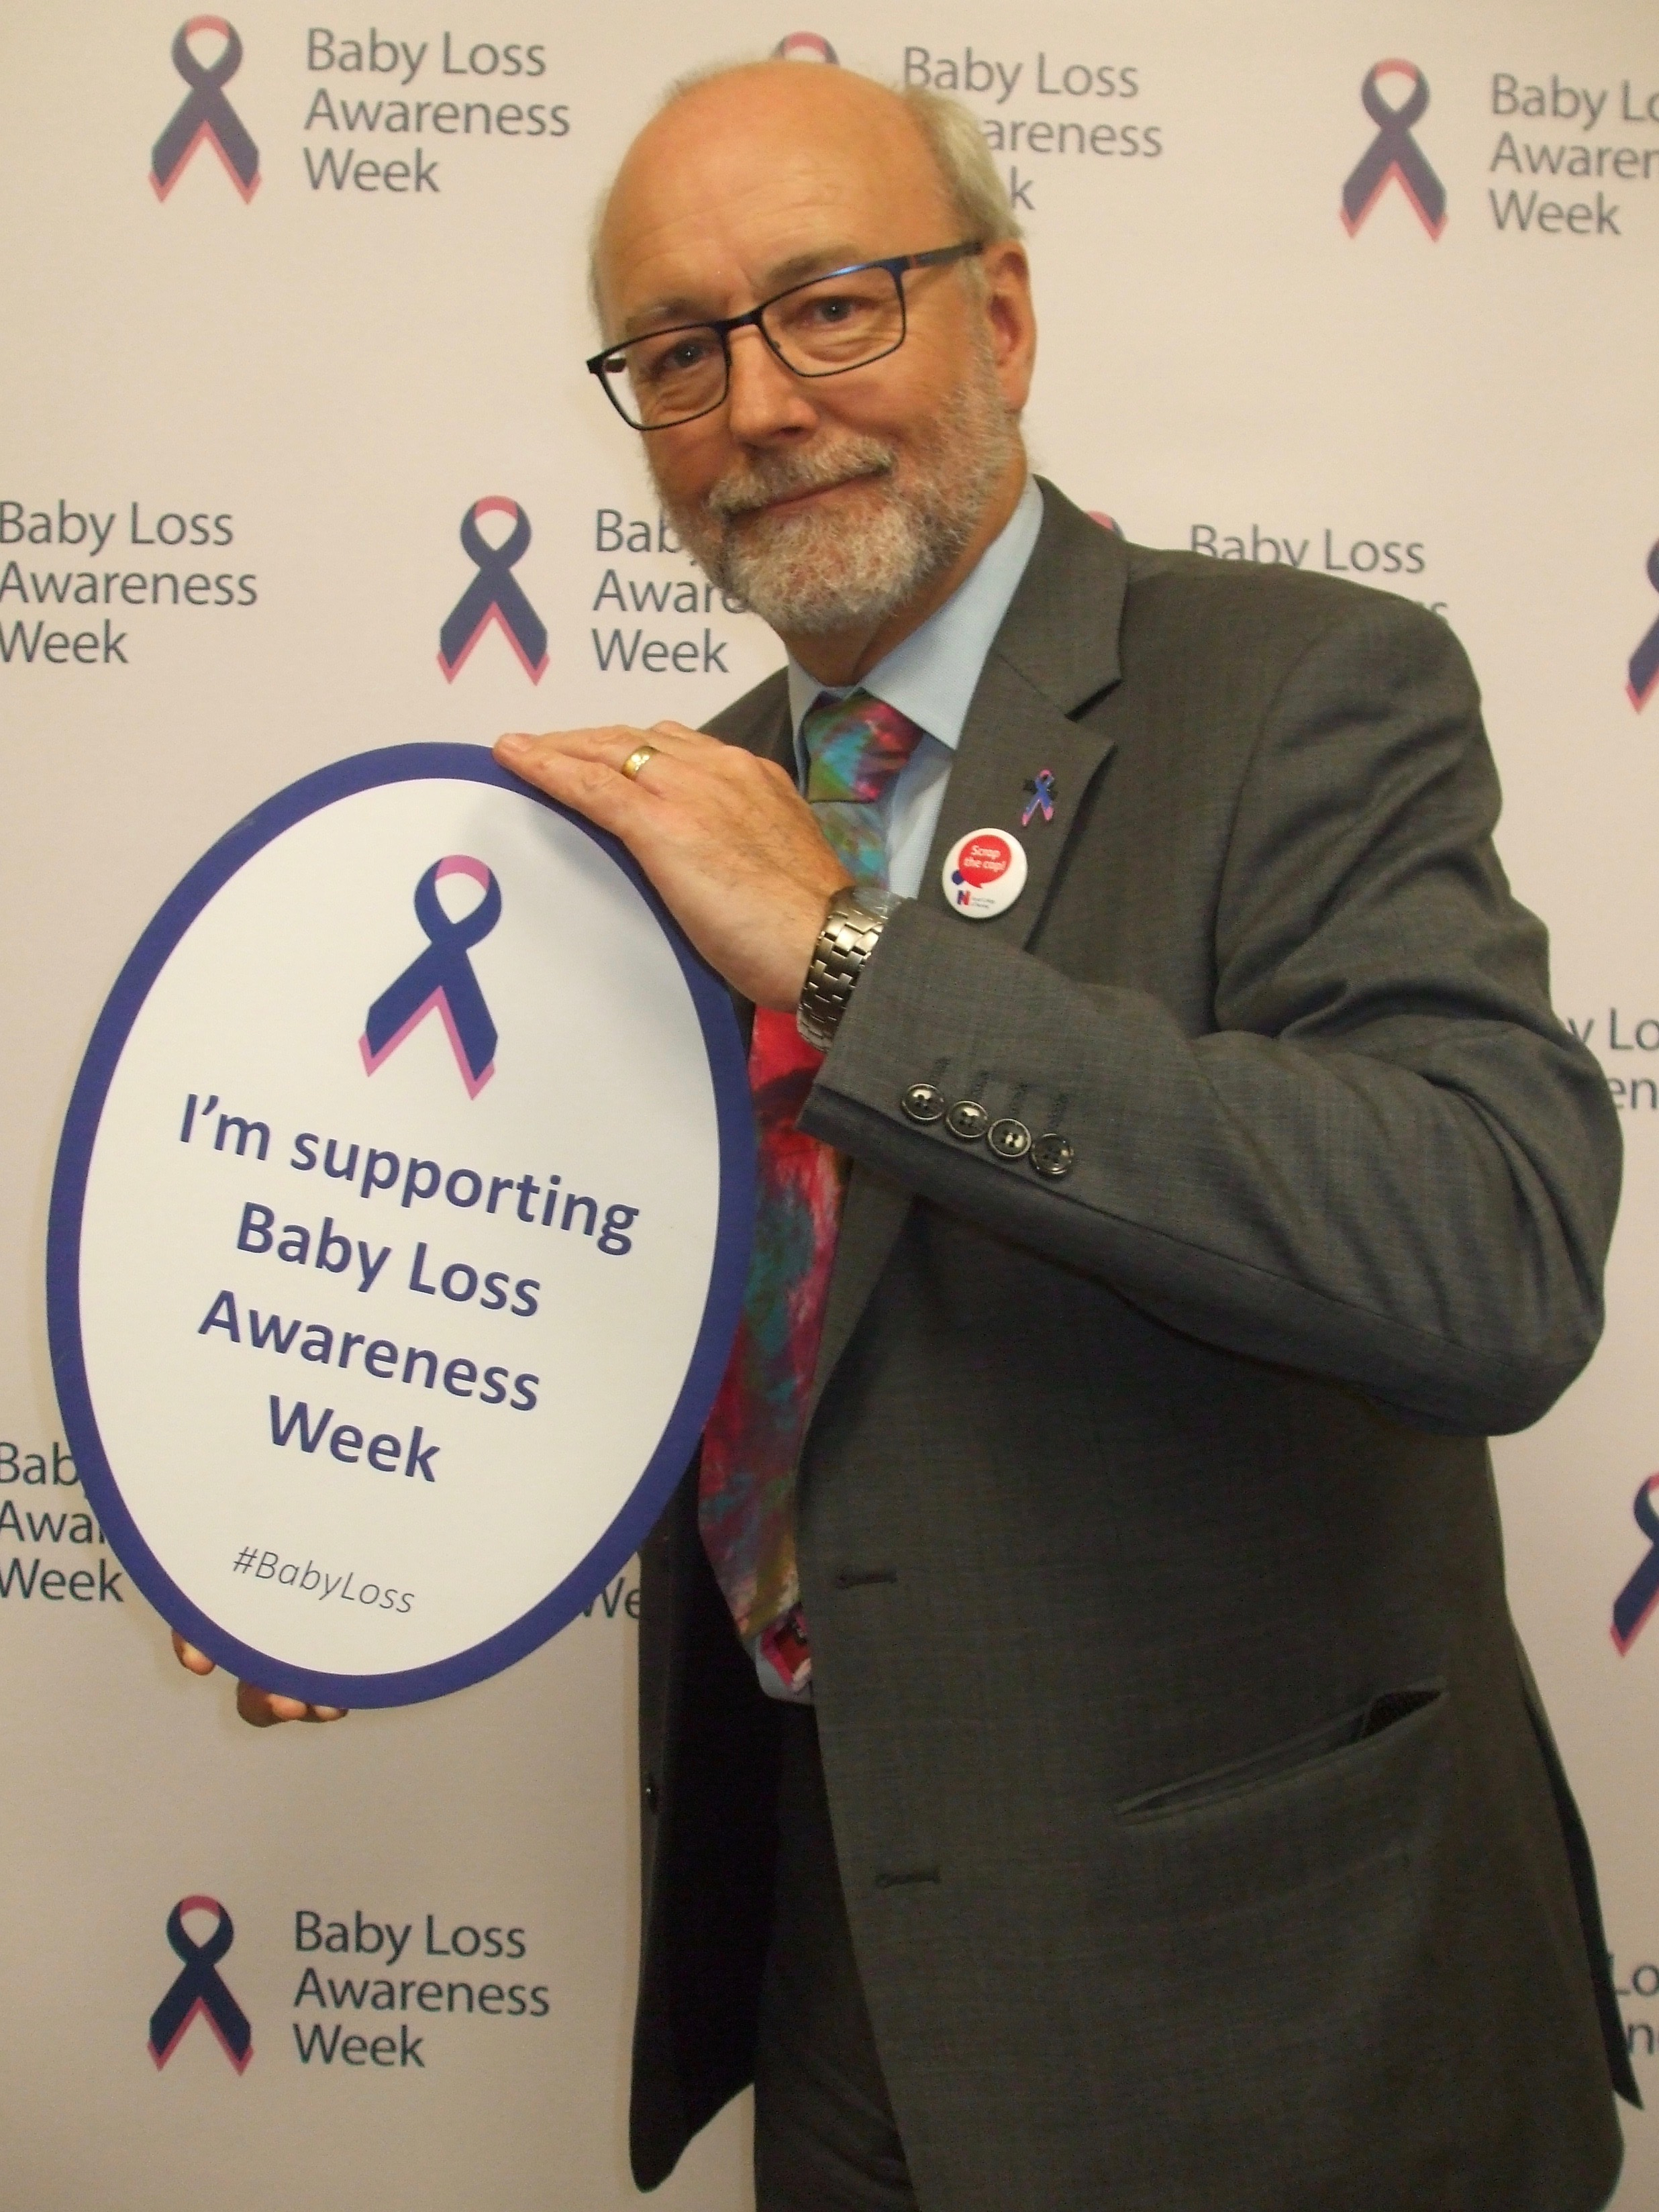 Alex supports Baby Loss Awareness Week